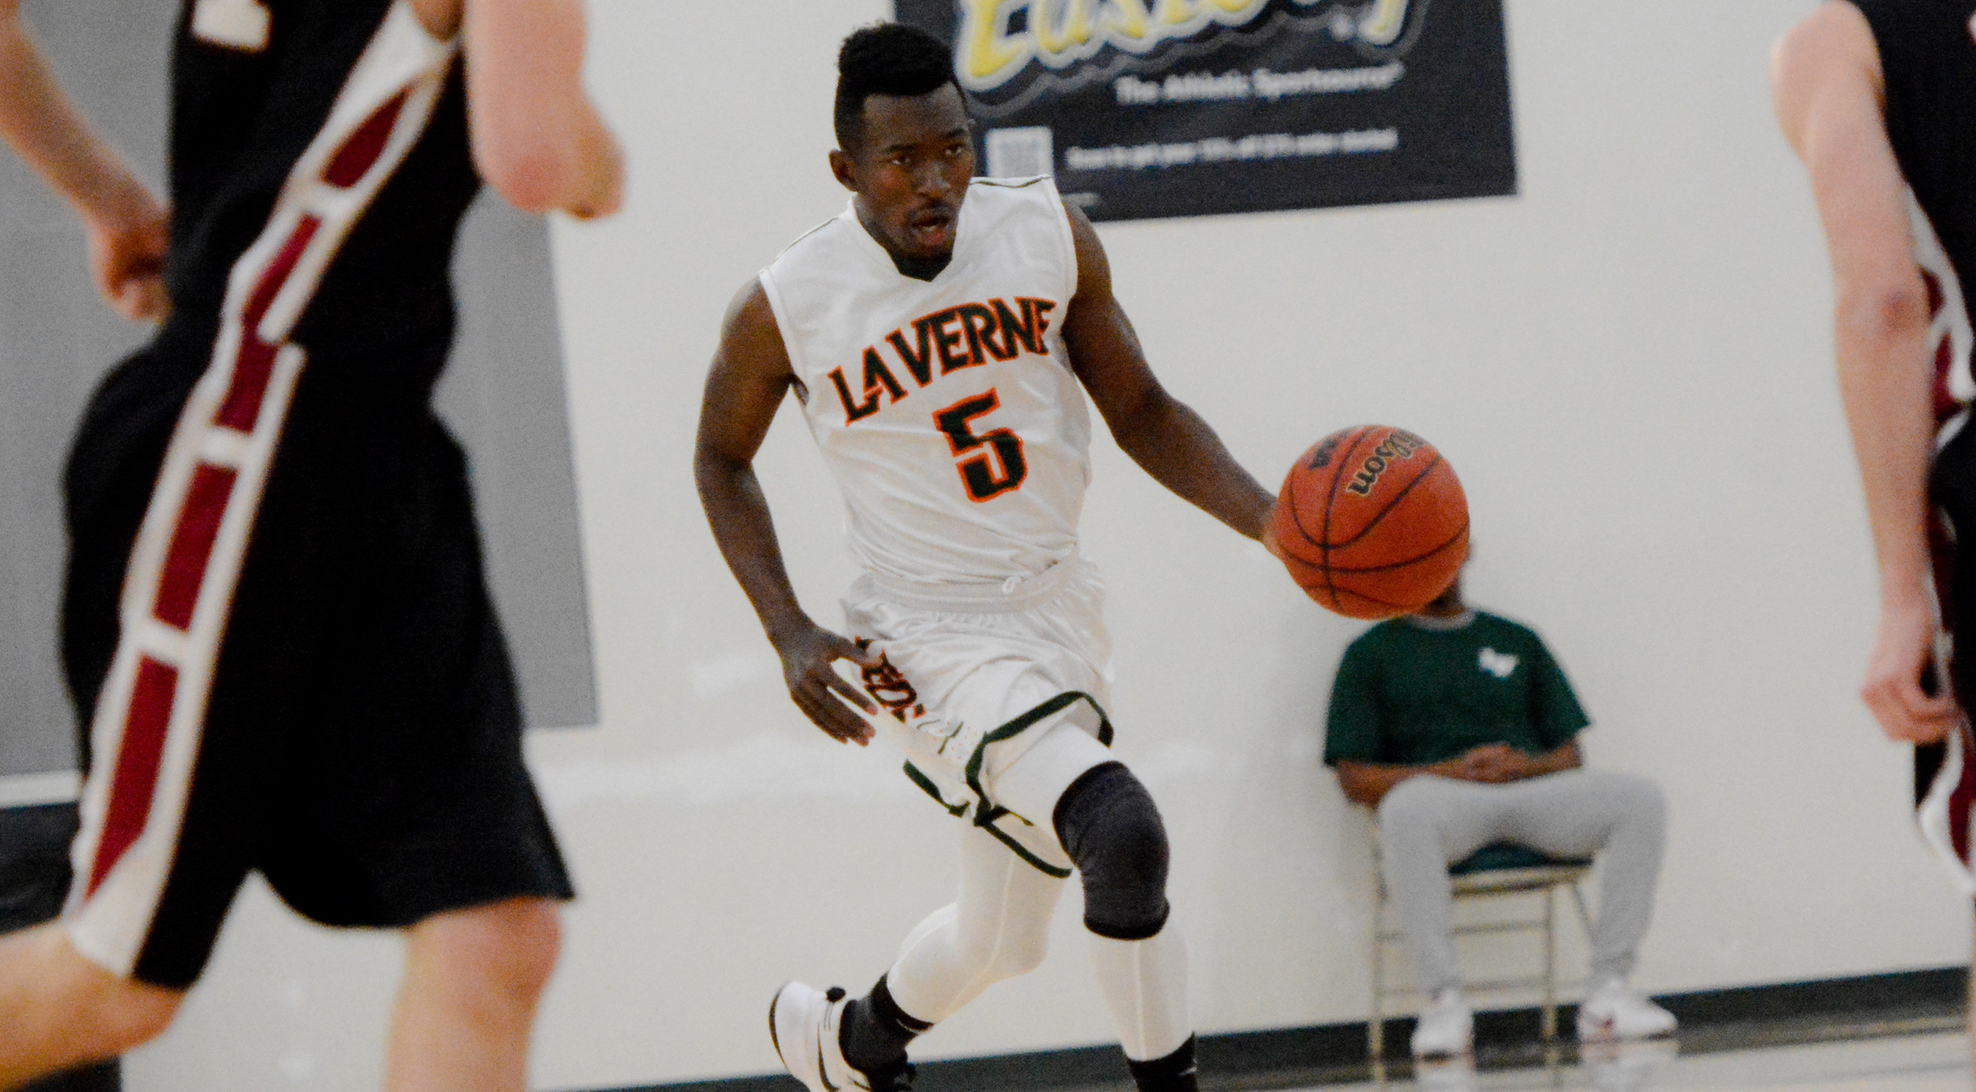 Late turnovers cost La Verne in 80-73 loss to Carthage